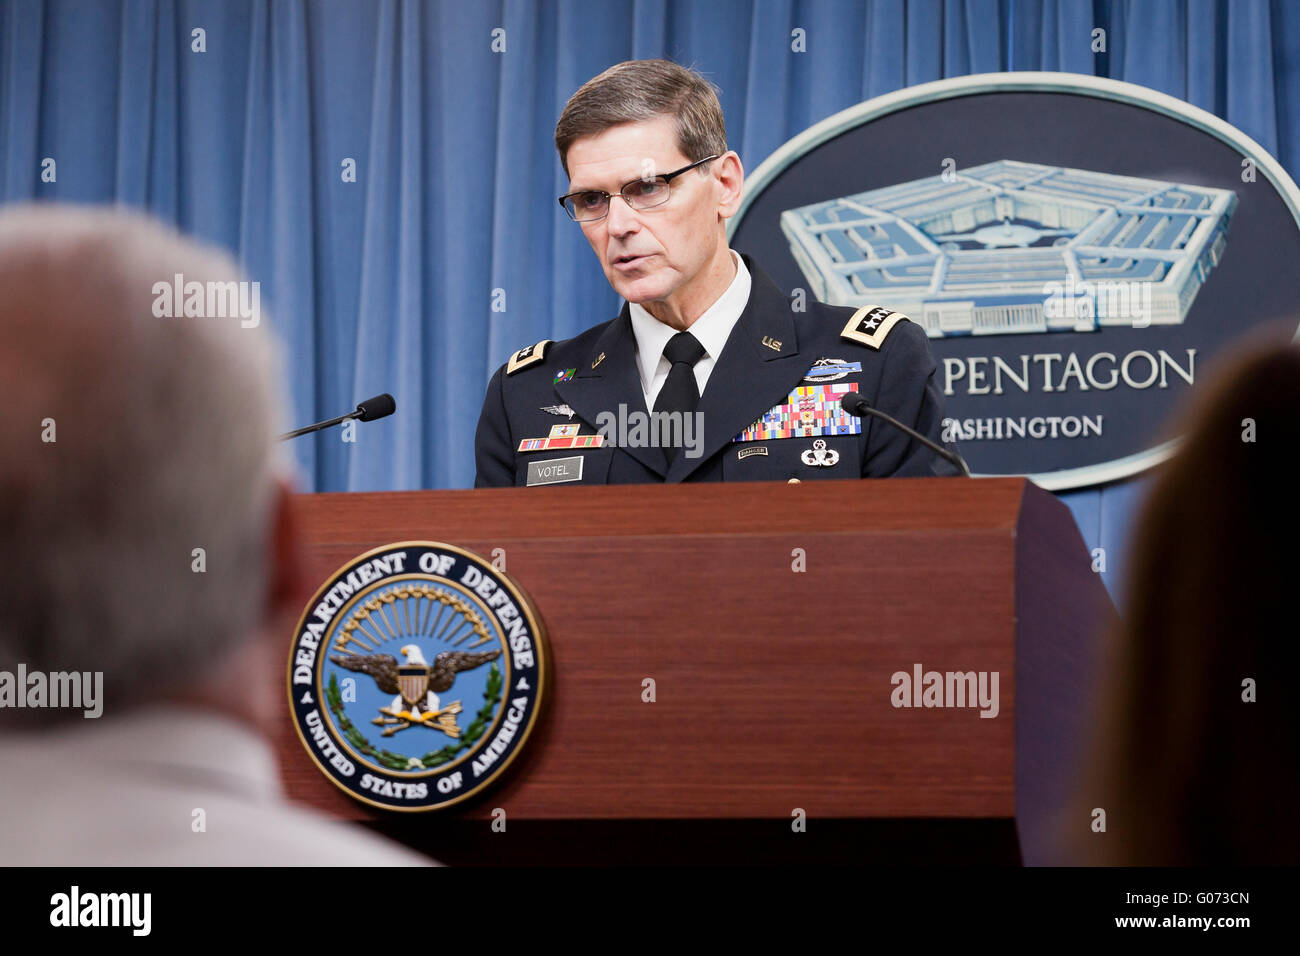 Washington, DC, USA. 29th April, 2016. Army General Joseph L. Votel, head of US Central Command, reports that the - Stock Image